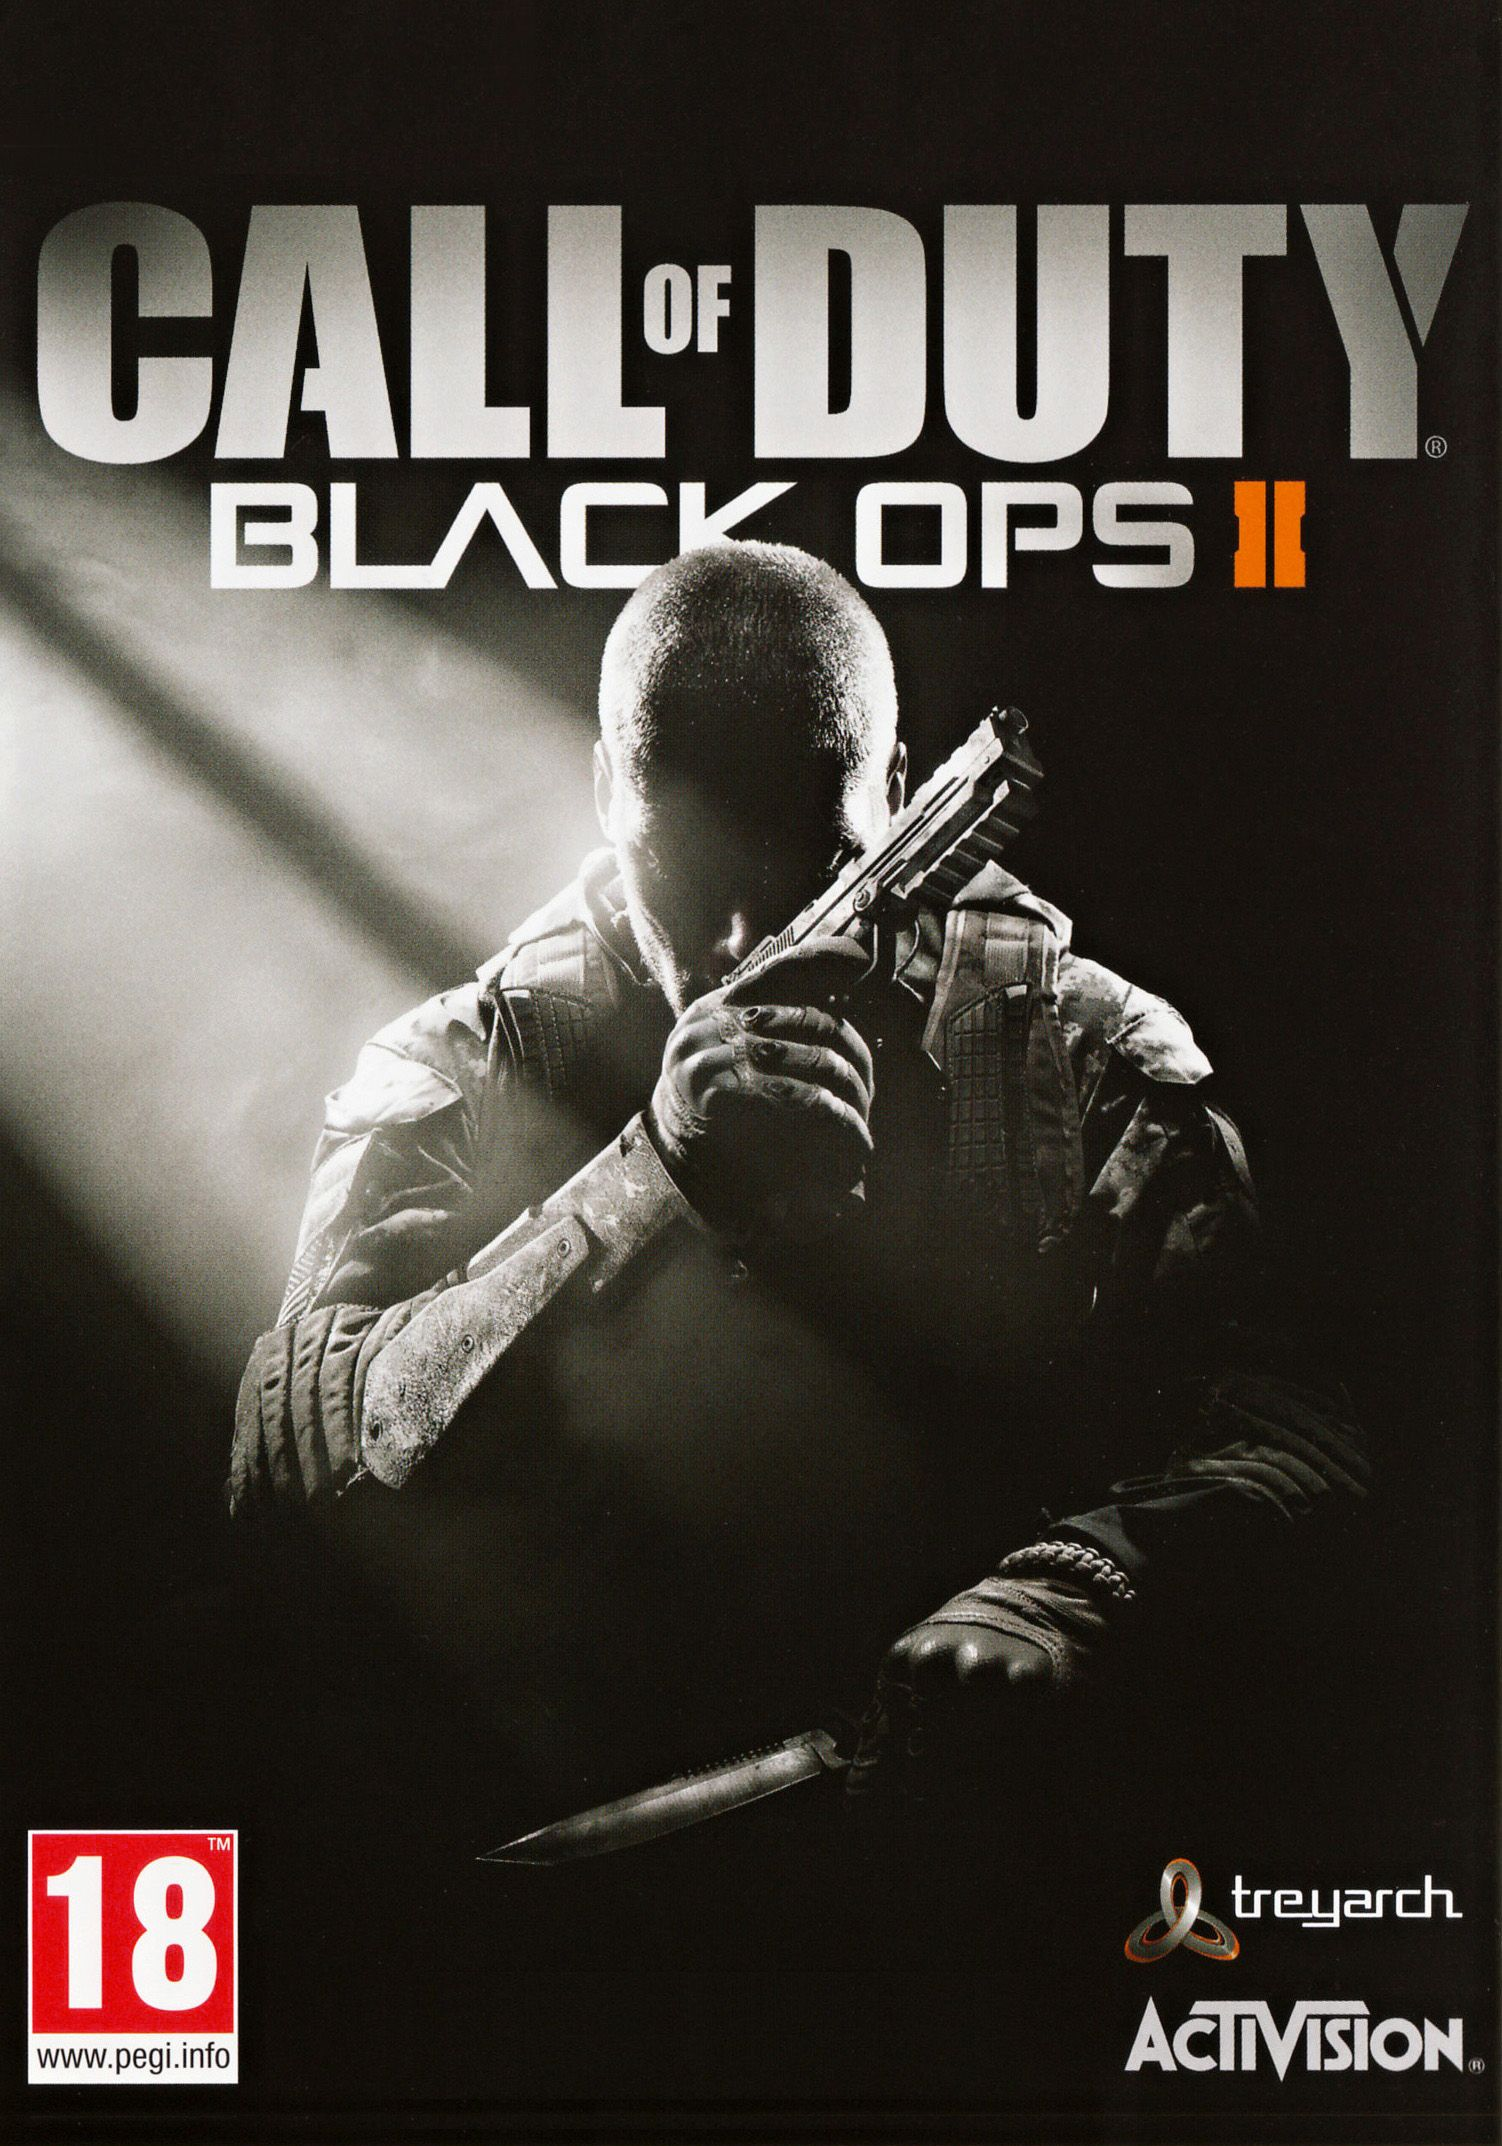 Pin By L Side Of Gaming On Game Covers Black Ops Call Of Duty Call Of Duty Black